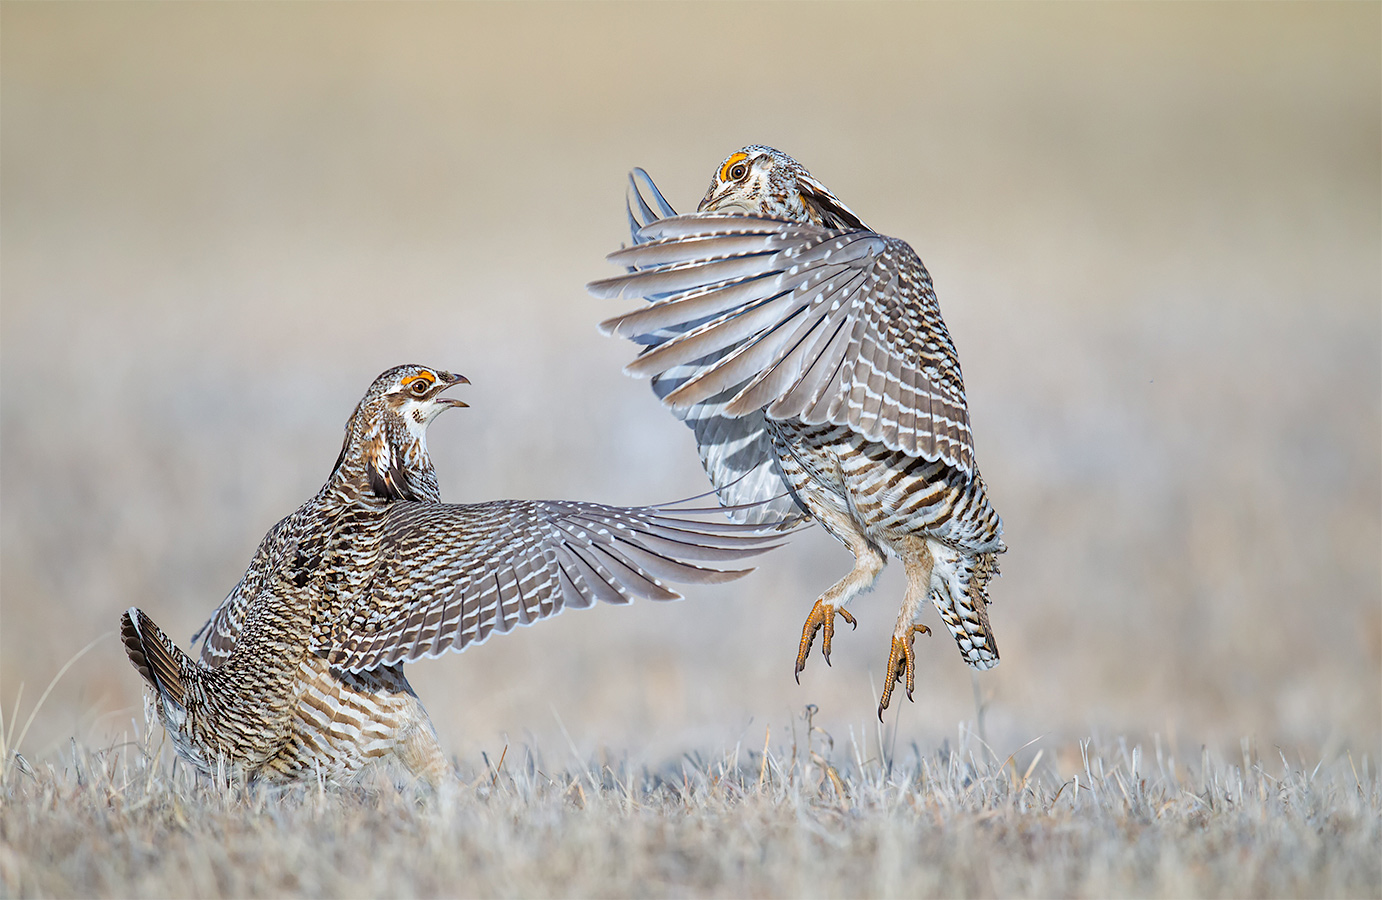 action_drneilson_sand-hills_prairie-chicken_0948_0